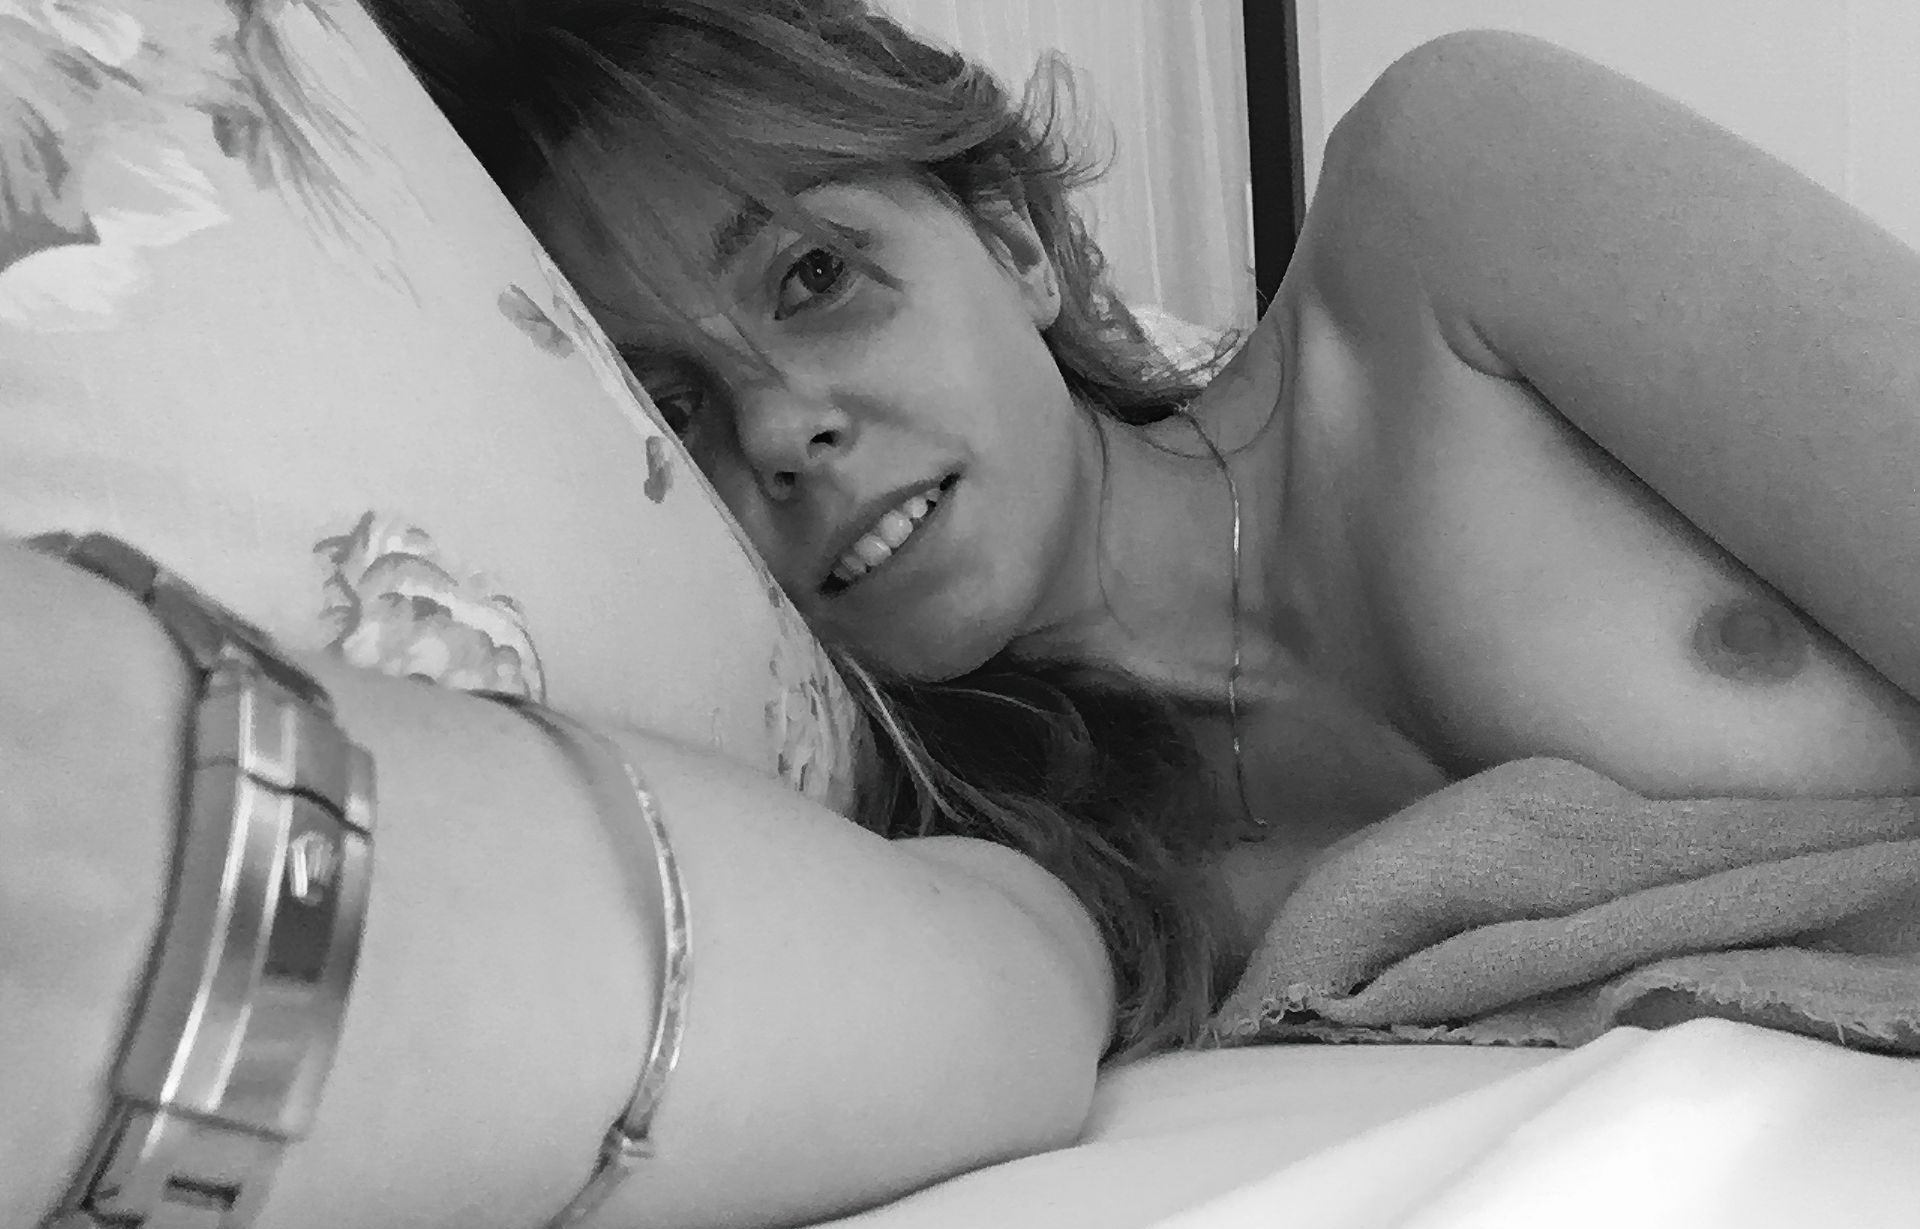 Stacey Dooley Nude Leaked The Fappening 0001